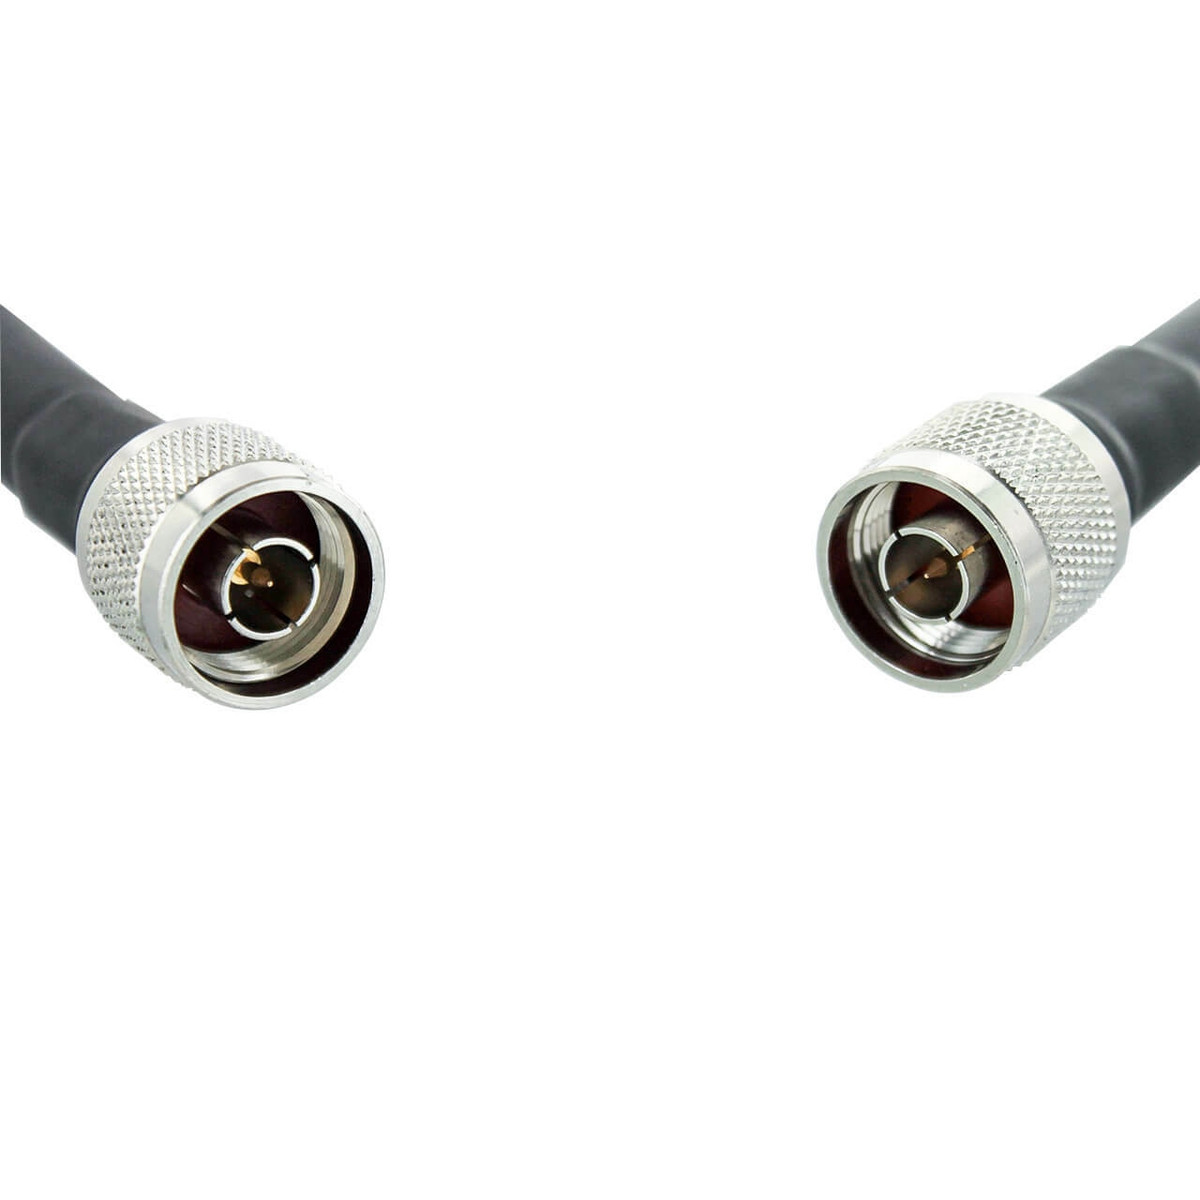 Bolton Technical N-Male to N-Male Bolton400 Ultra Low-Loss Coax Cable | 10 ft. Cable